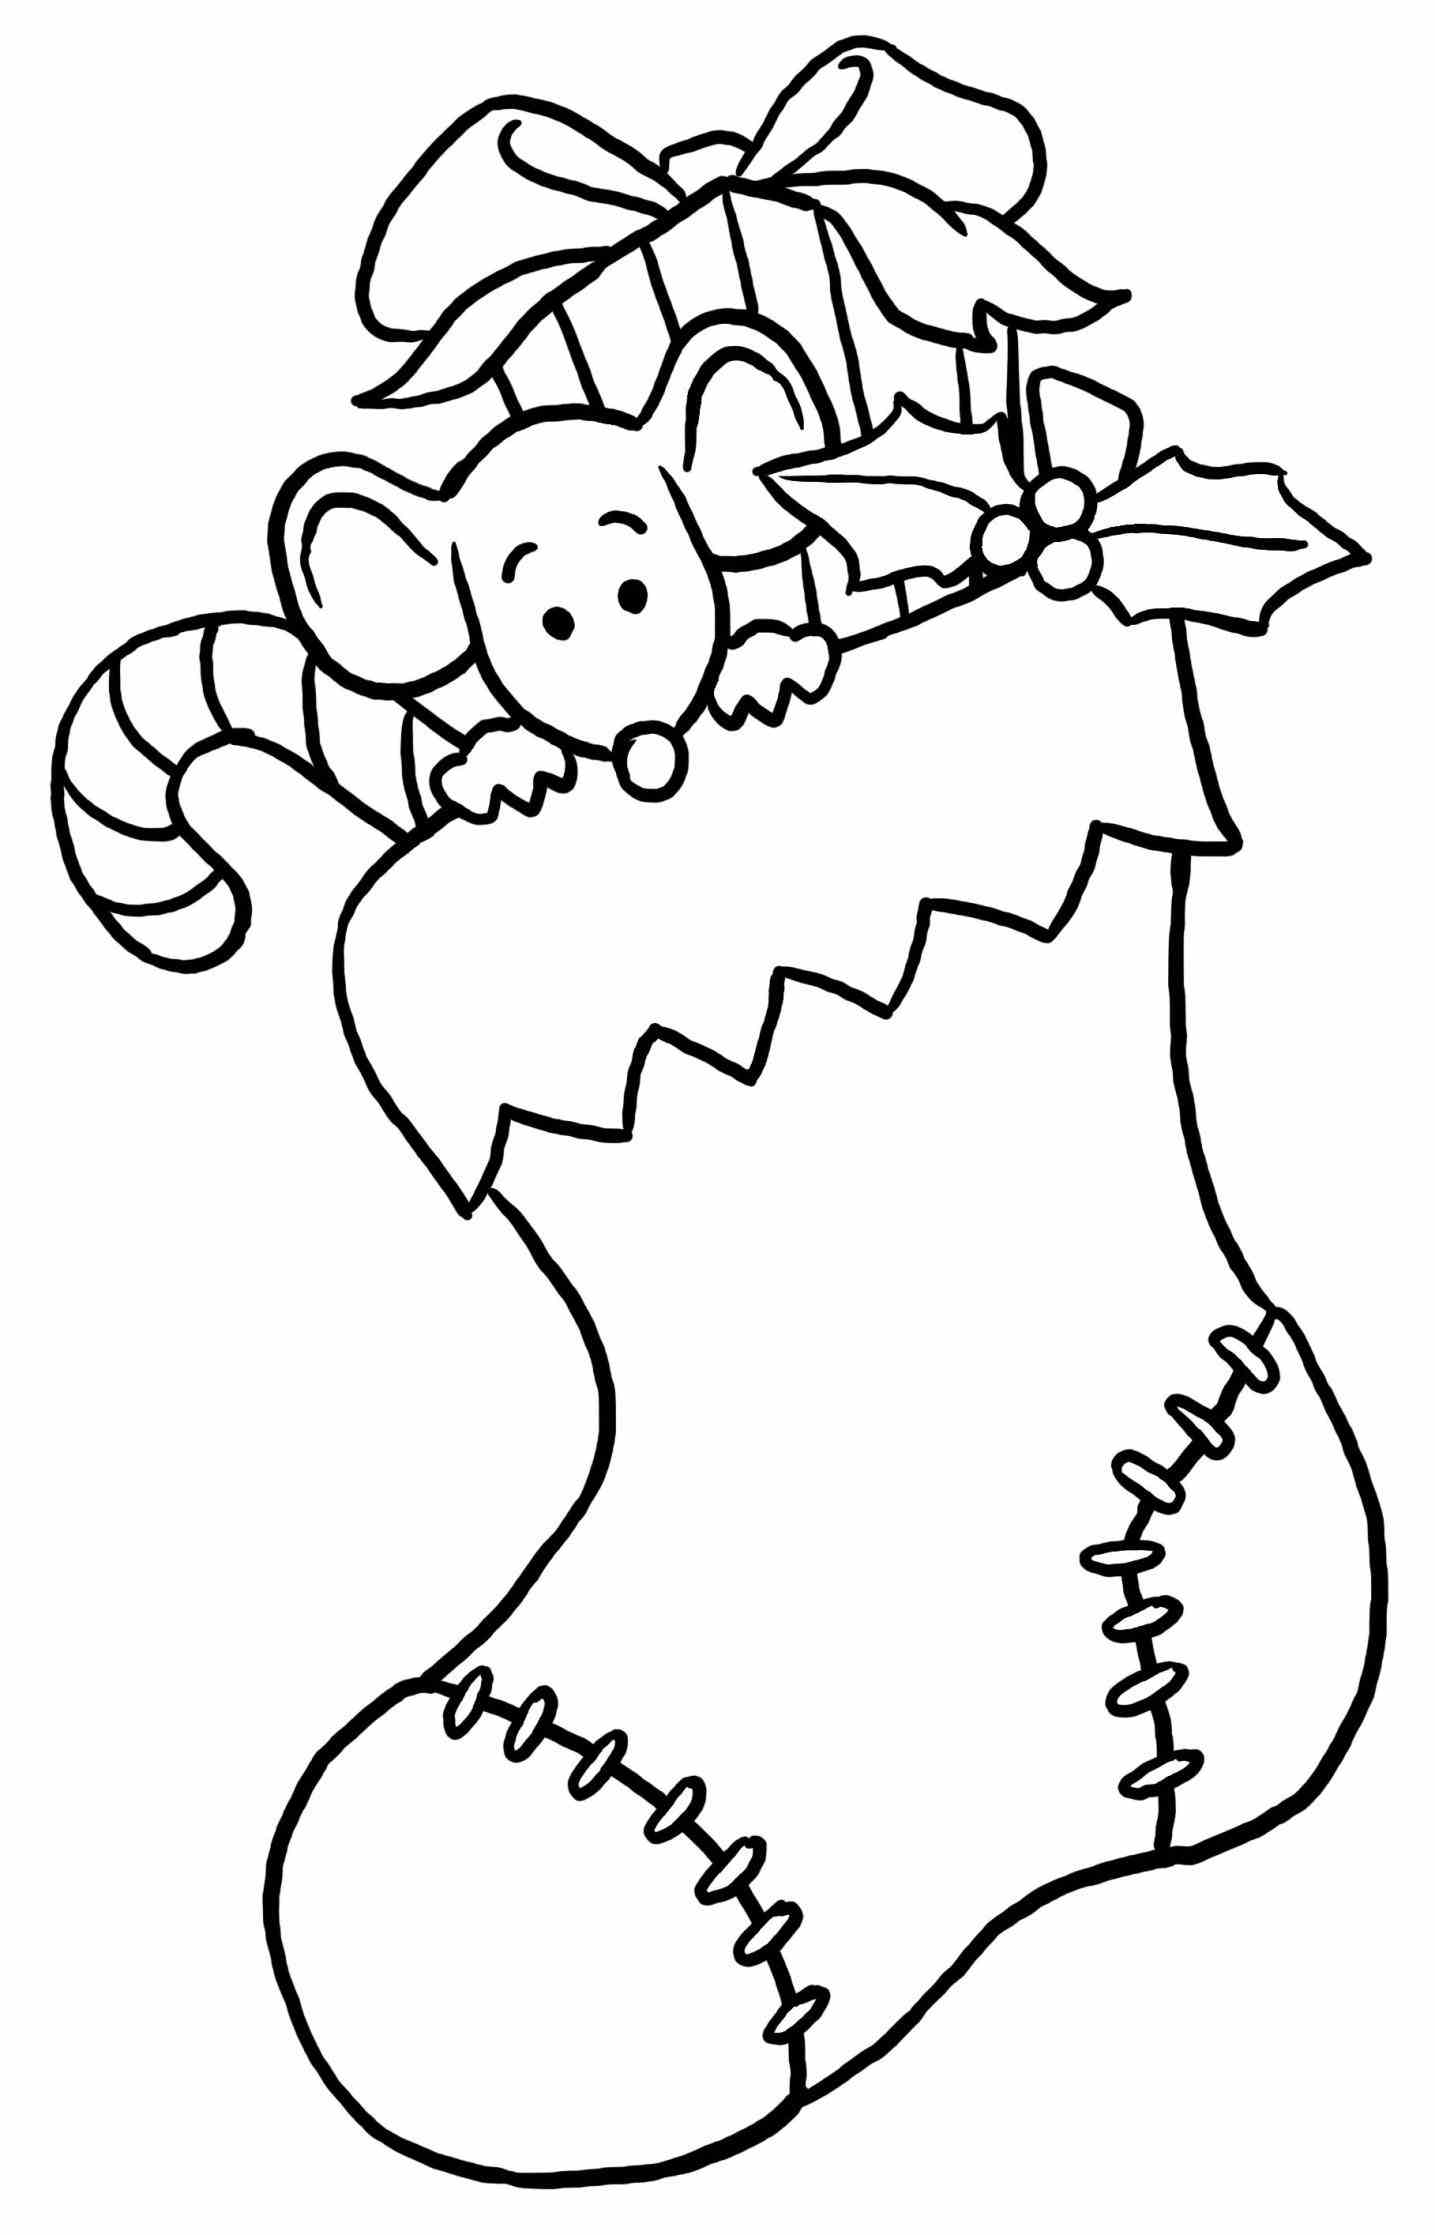 Christmas Coloring Games Online With Santa Page Pages Of